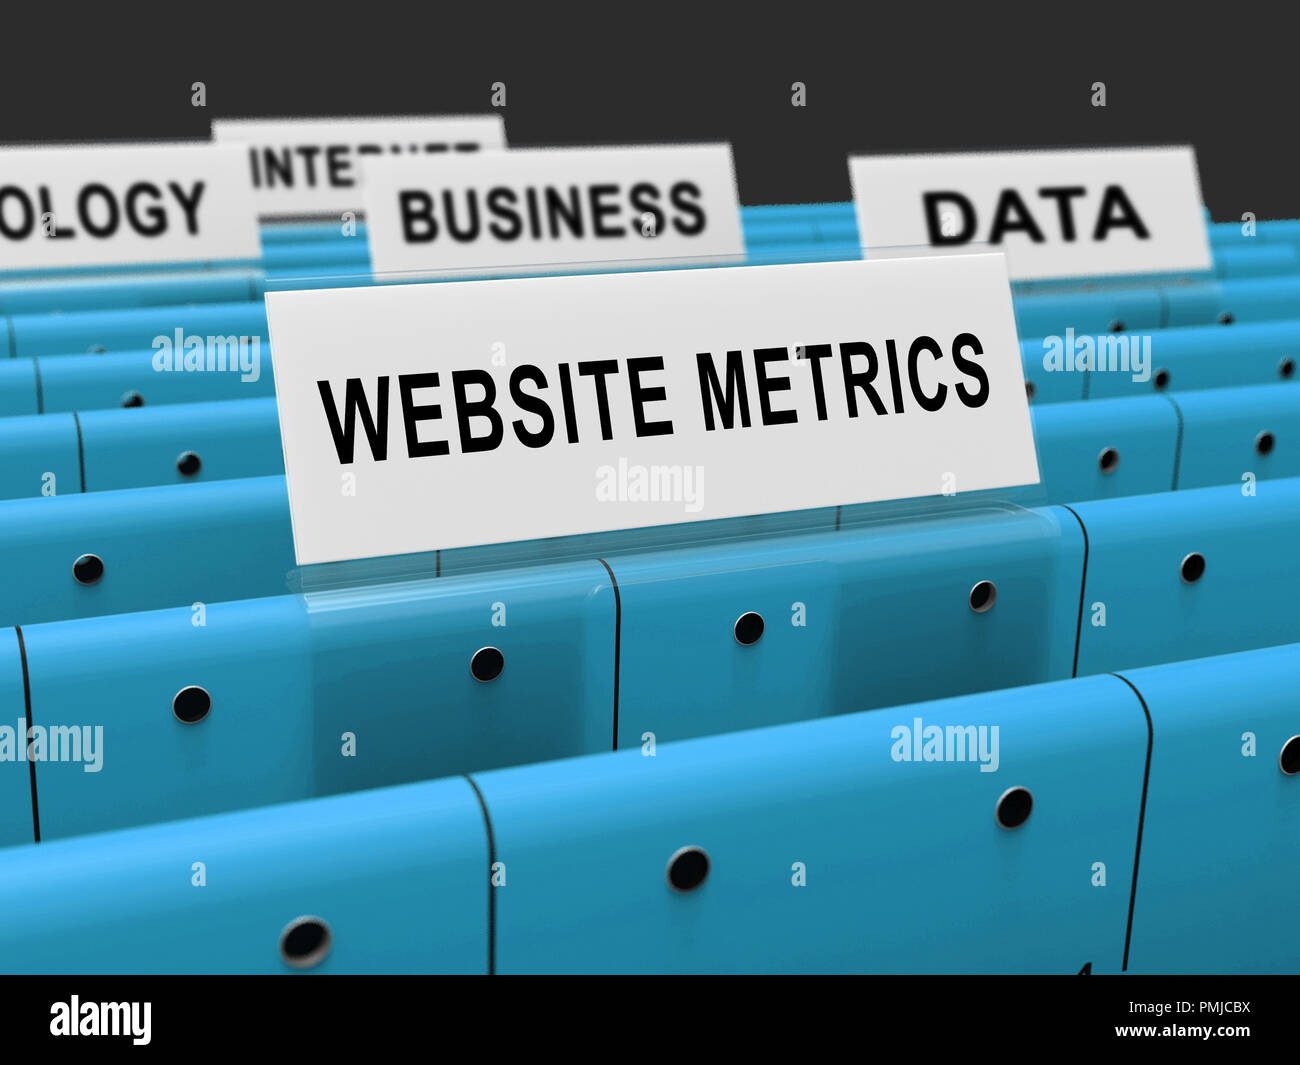 Website Metrics Business Site Analytics 3d Rendering Shows Analytic Forecasts Or Trends For Data Evaluation - Stock Image